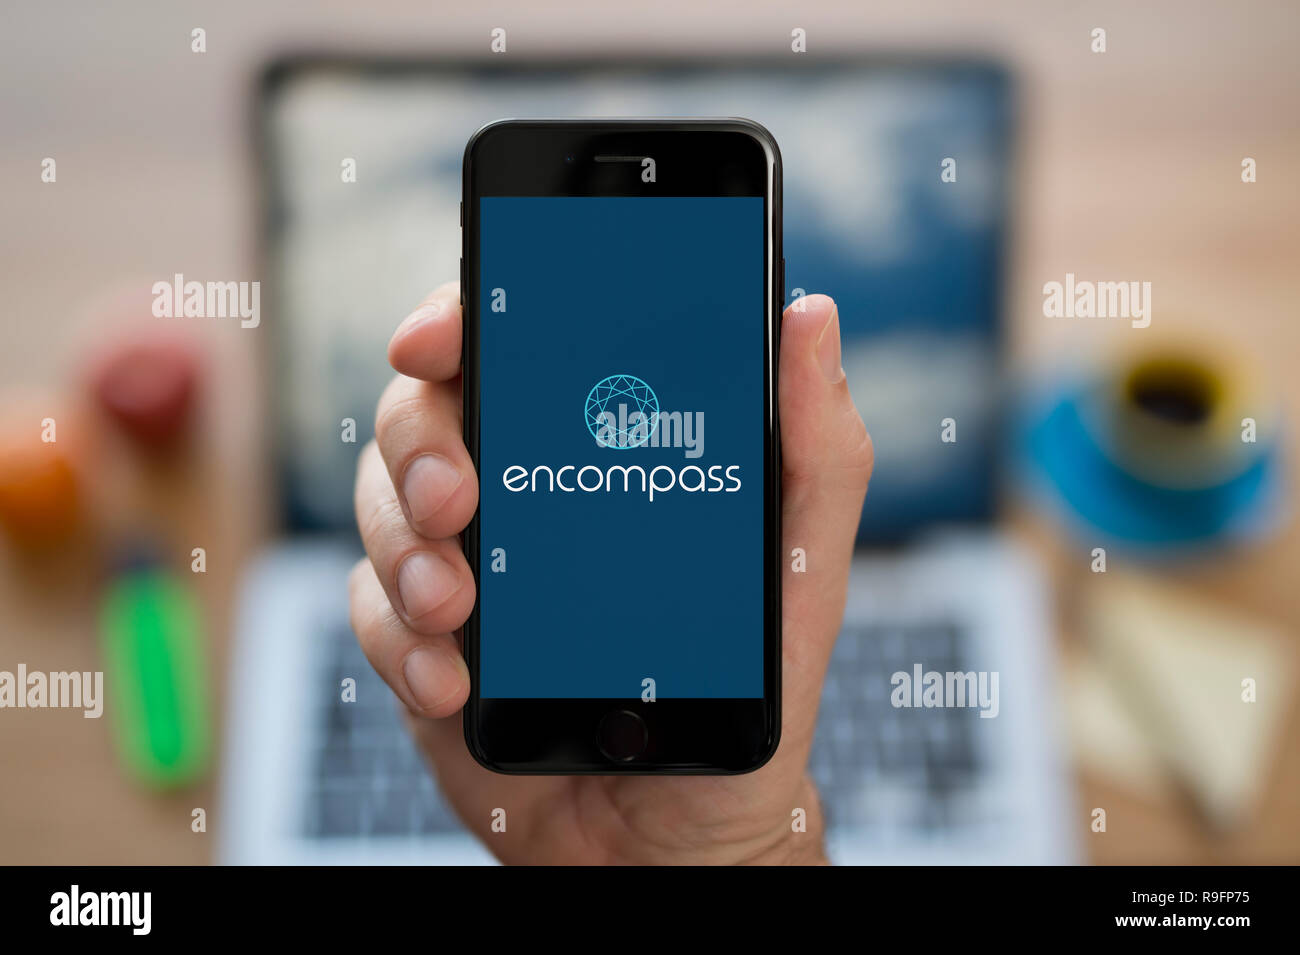 A man looks at his iPhone which displays the Encompass Corporation logo (Editorial use only). - Stock Image